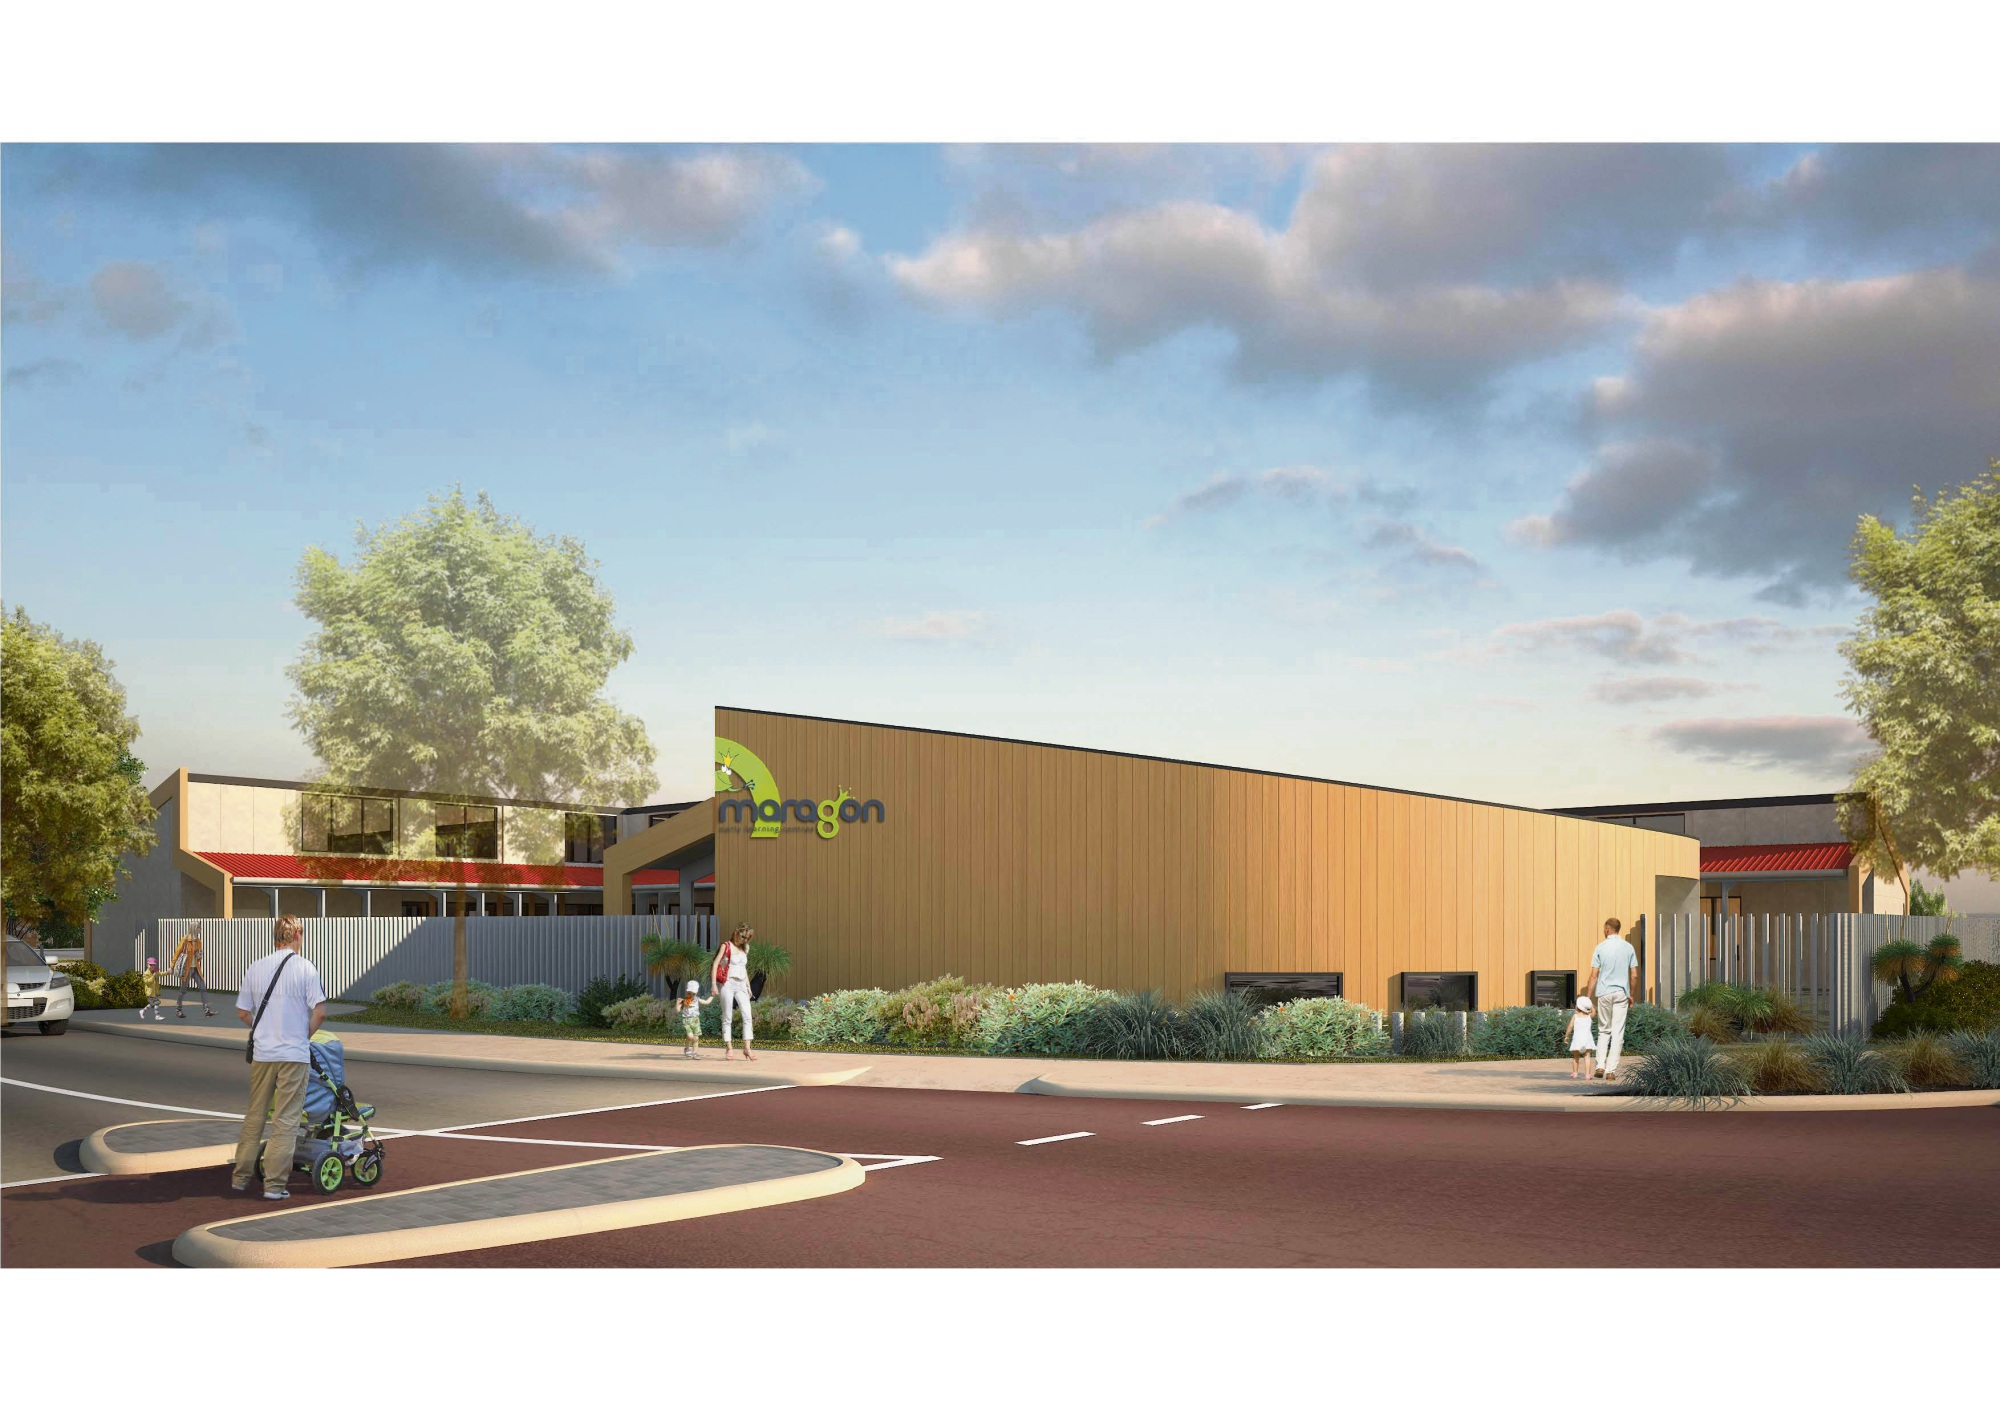 An artist's impression of the new early learning centre.